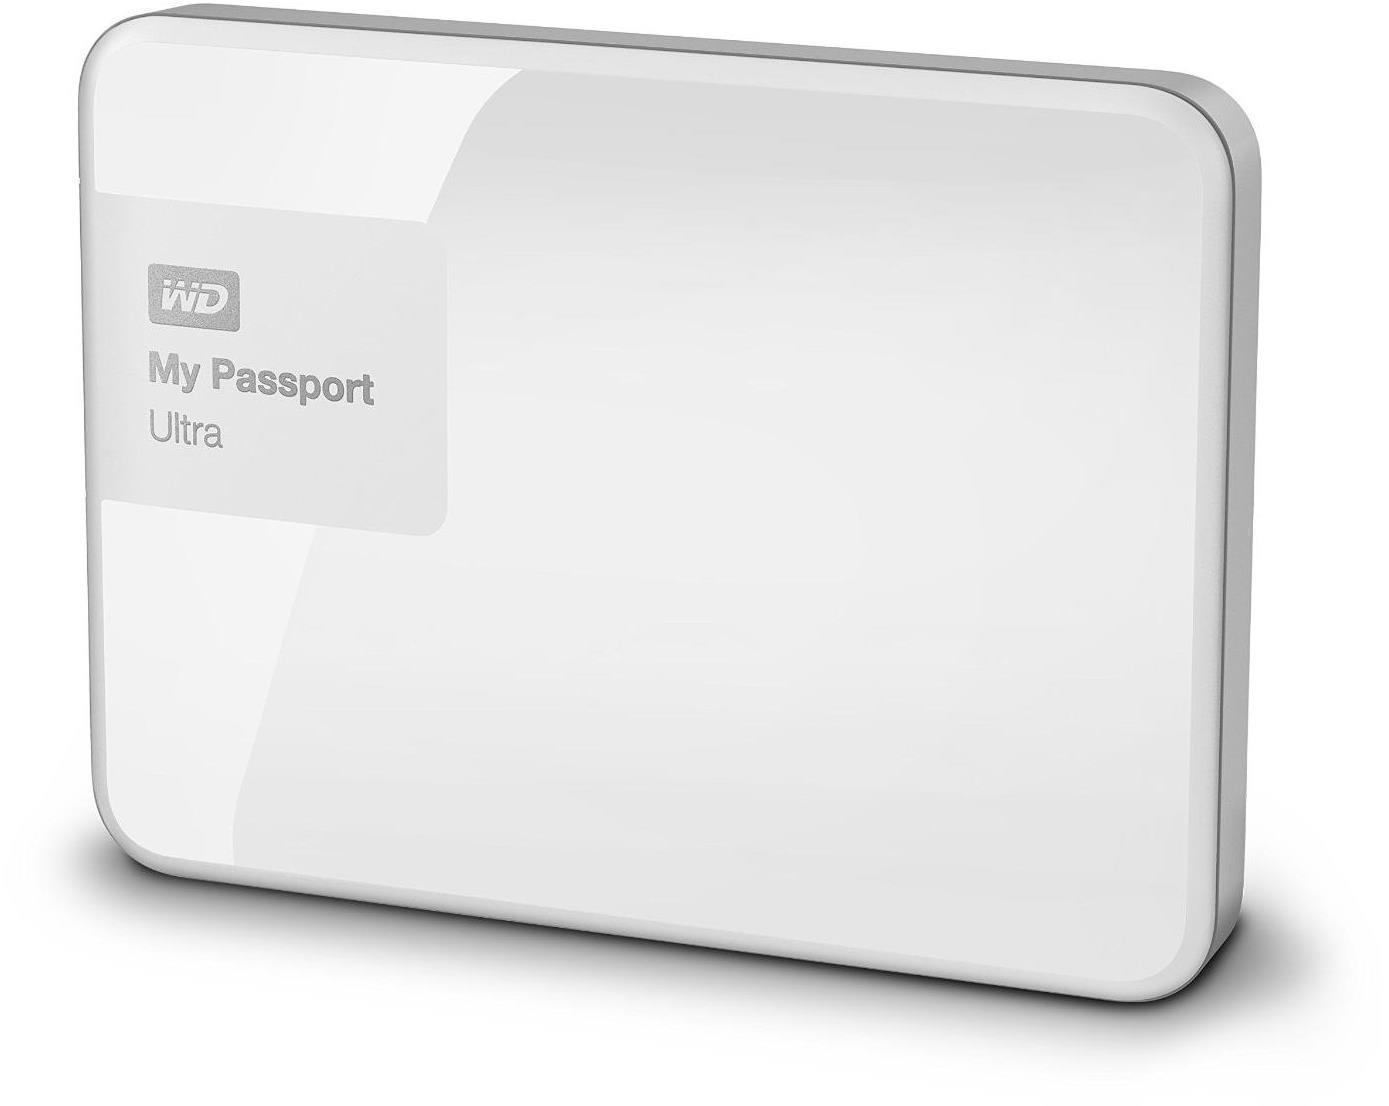 Wd My Passport Ultra Wdbbkd0020bwt 2 Tb External Hard Drive Book 6tb Usb 30 Harddisk White And 20 Compatibility Local Cloud Backup